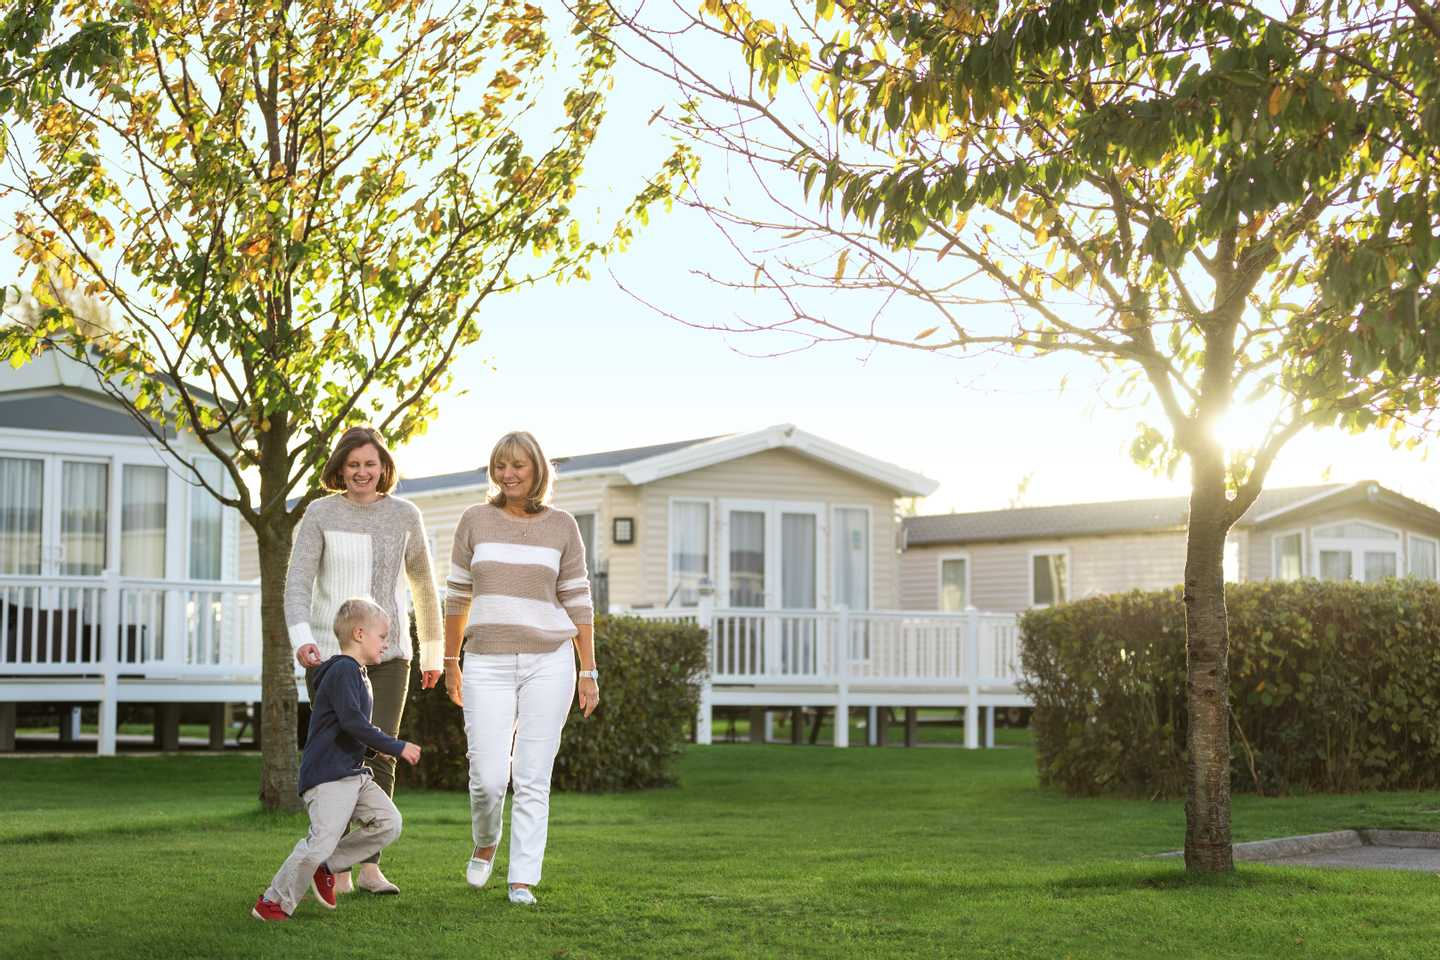 A family walking through Hopton Holiday Village